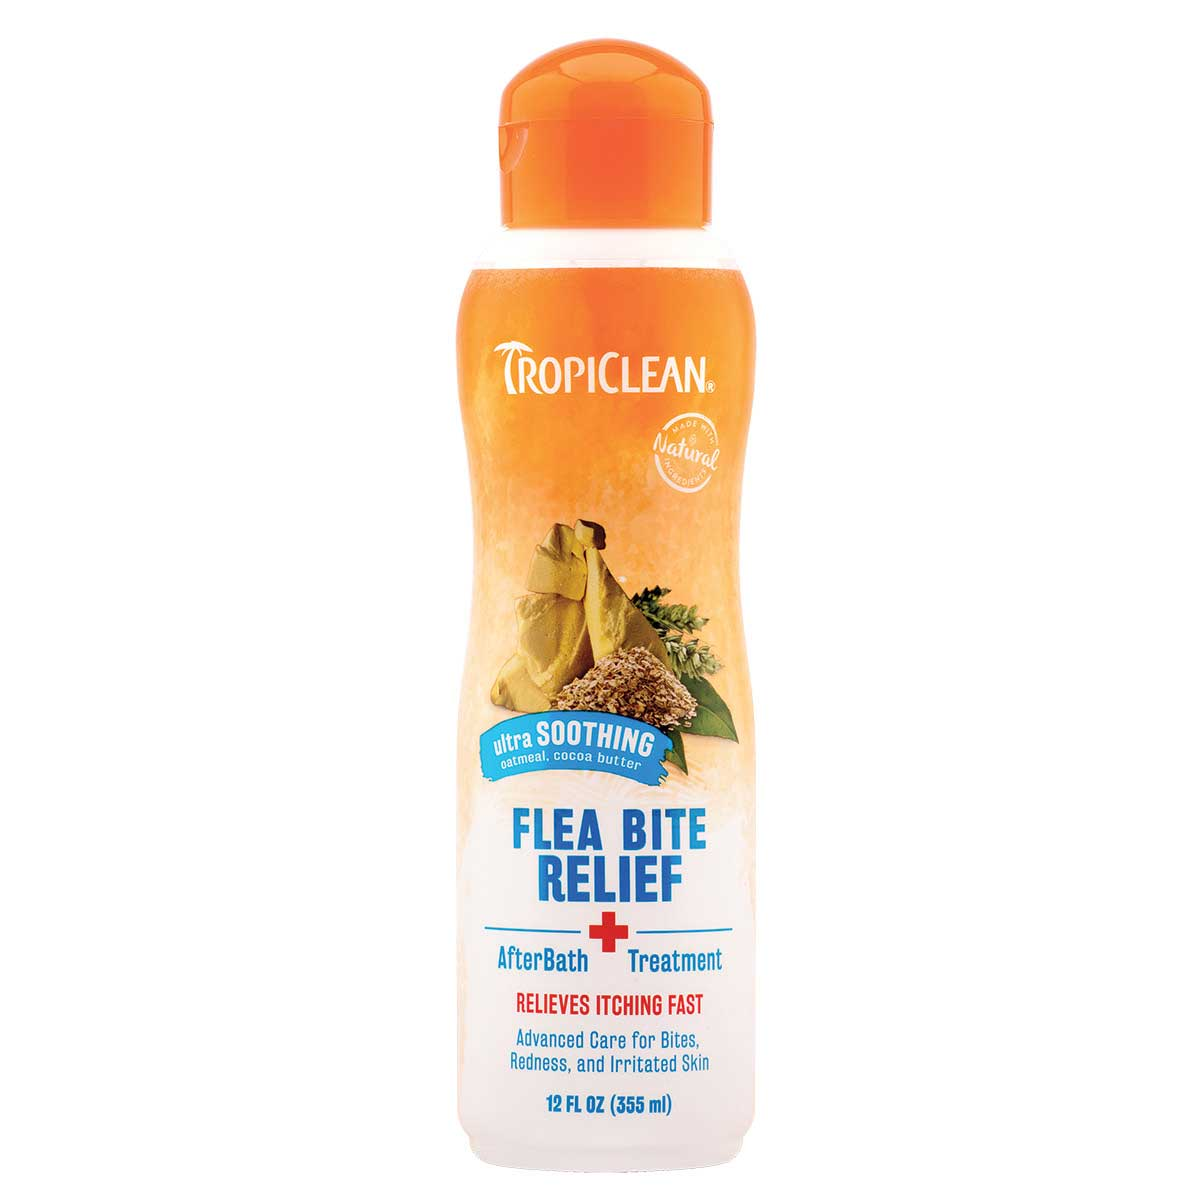 Tropiclean Ultra Soothing Bite Relief Afterbath Treatment 12 oz